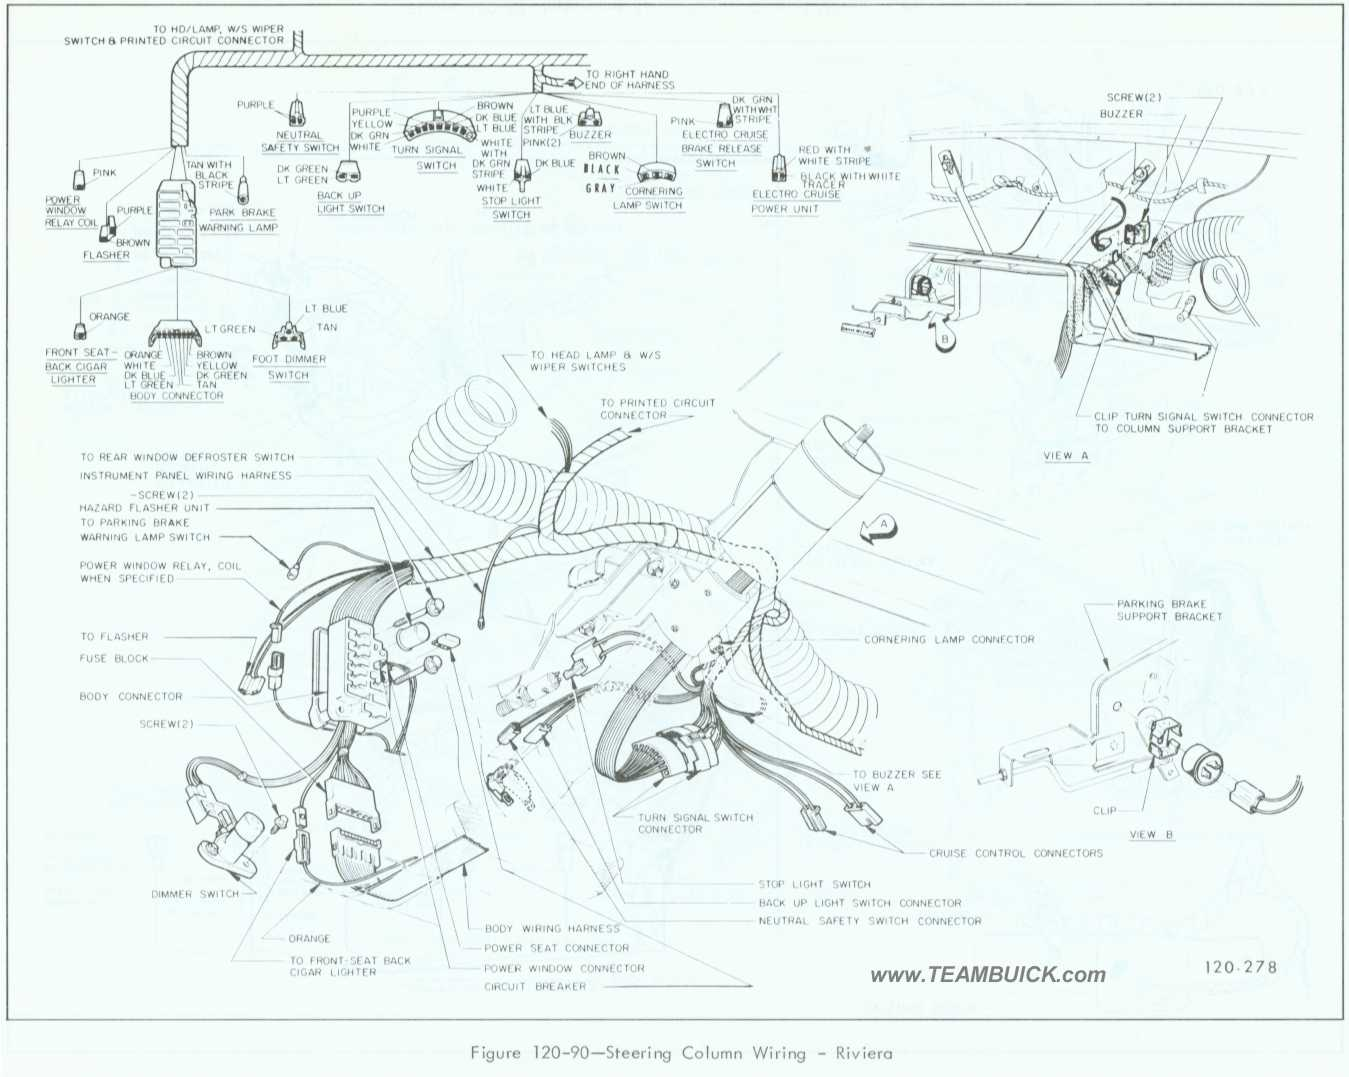 71 chevelle wiring diagram p38 obd 67 el camino used parts imageresizertool com